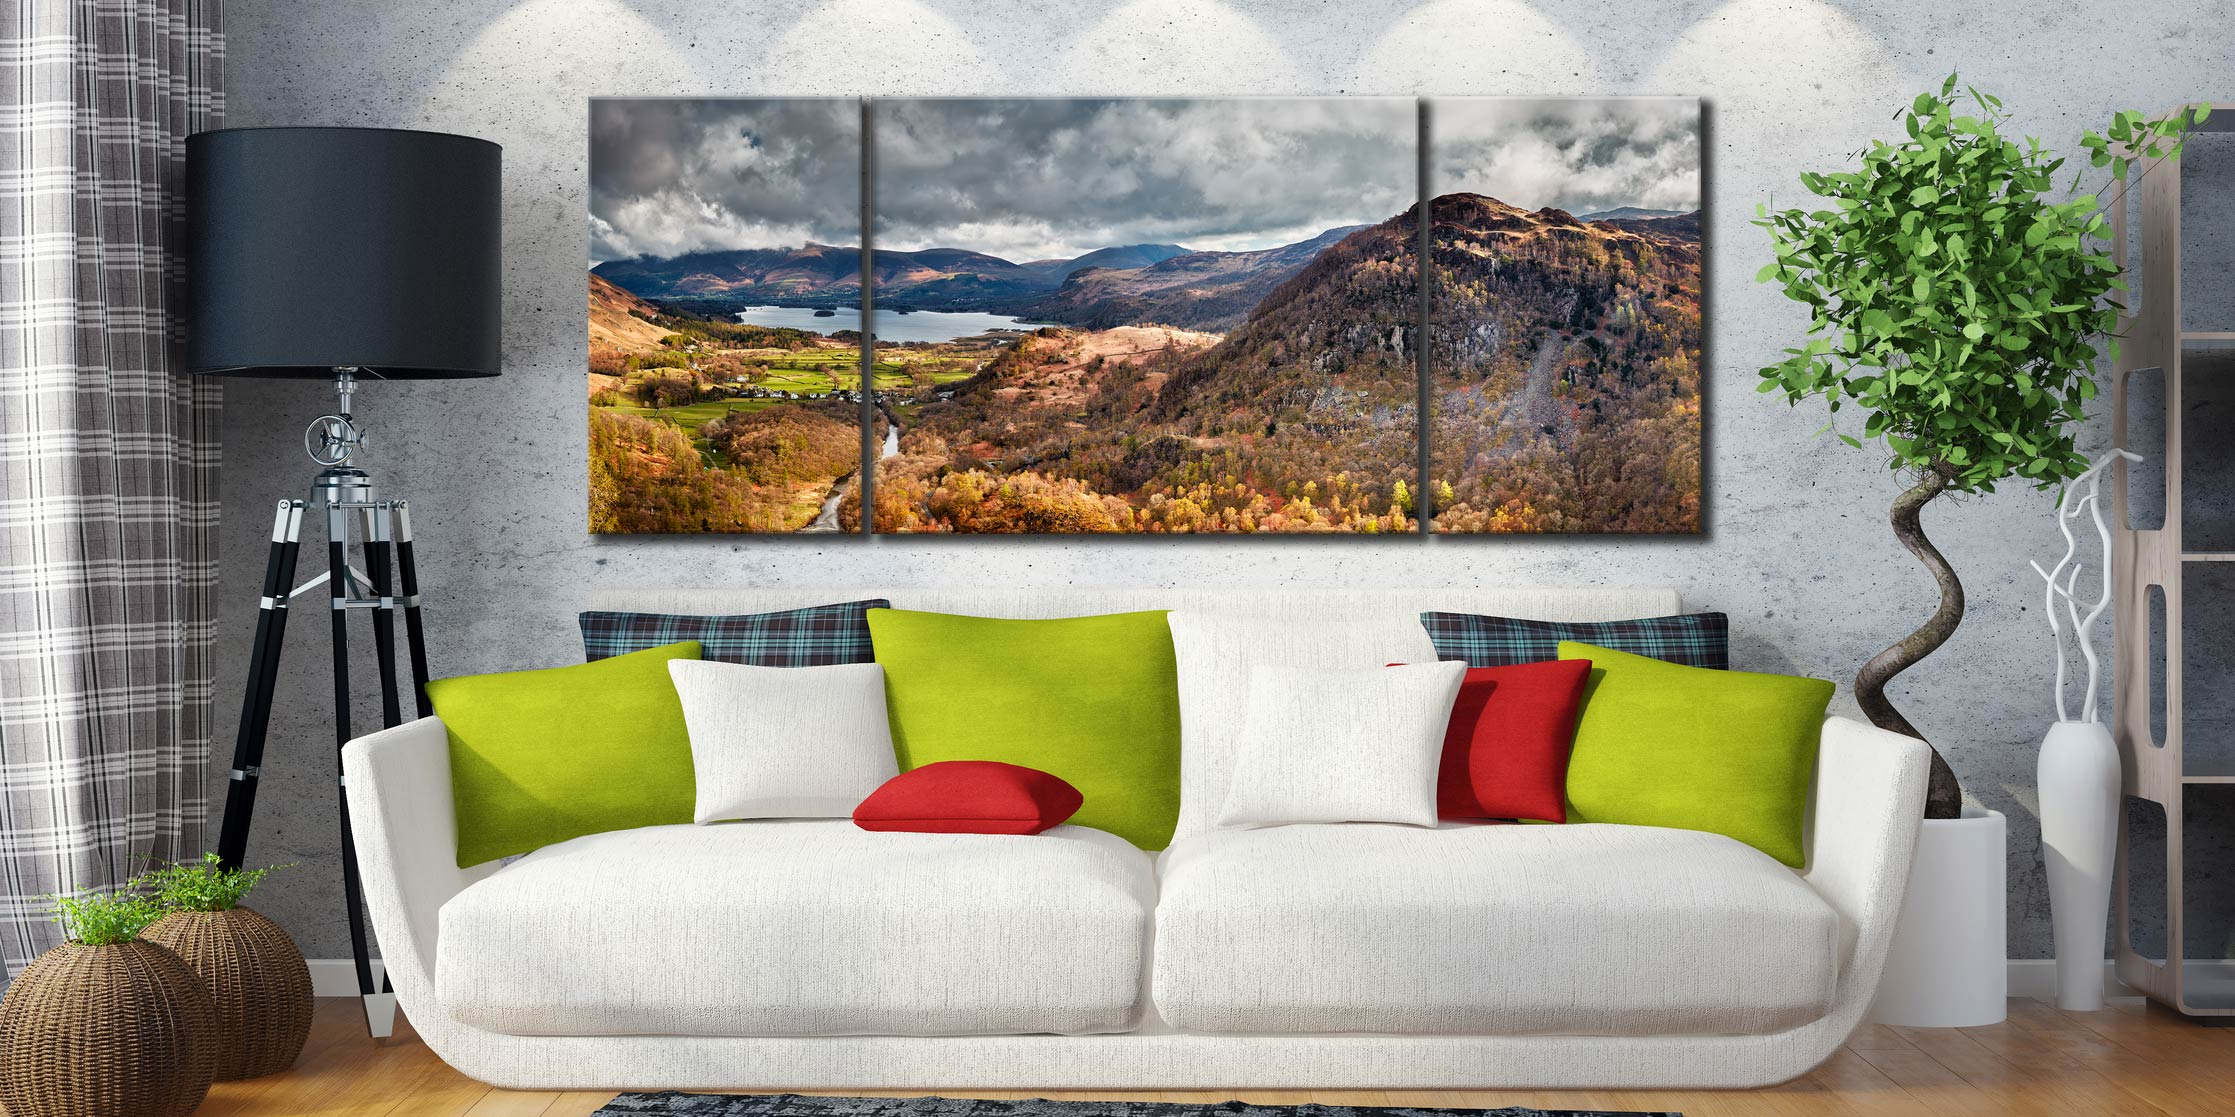 Kings How and Derwent Water  - 3 Panel Wide Mid Canvas on Wall